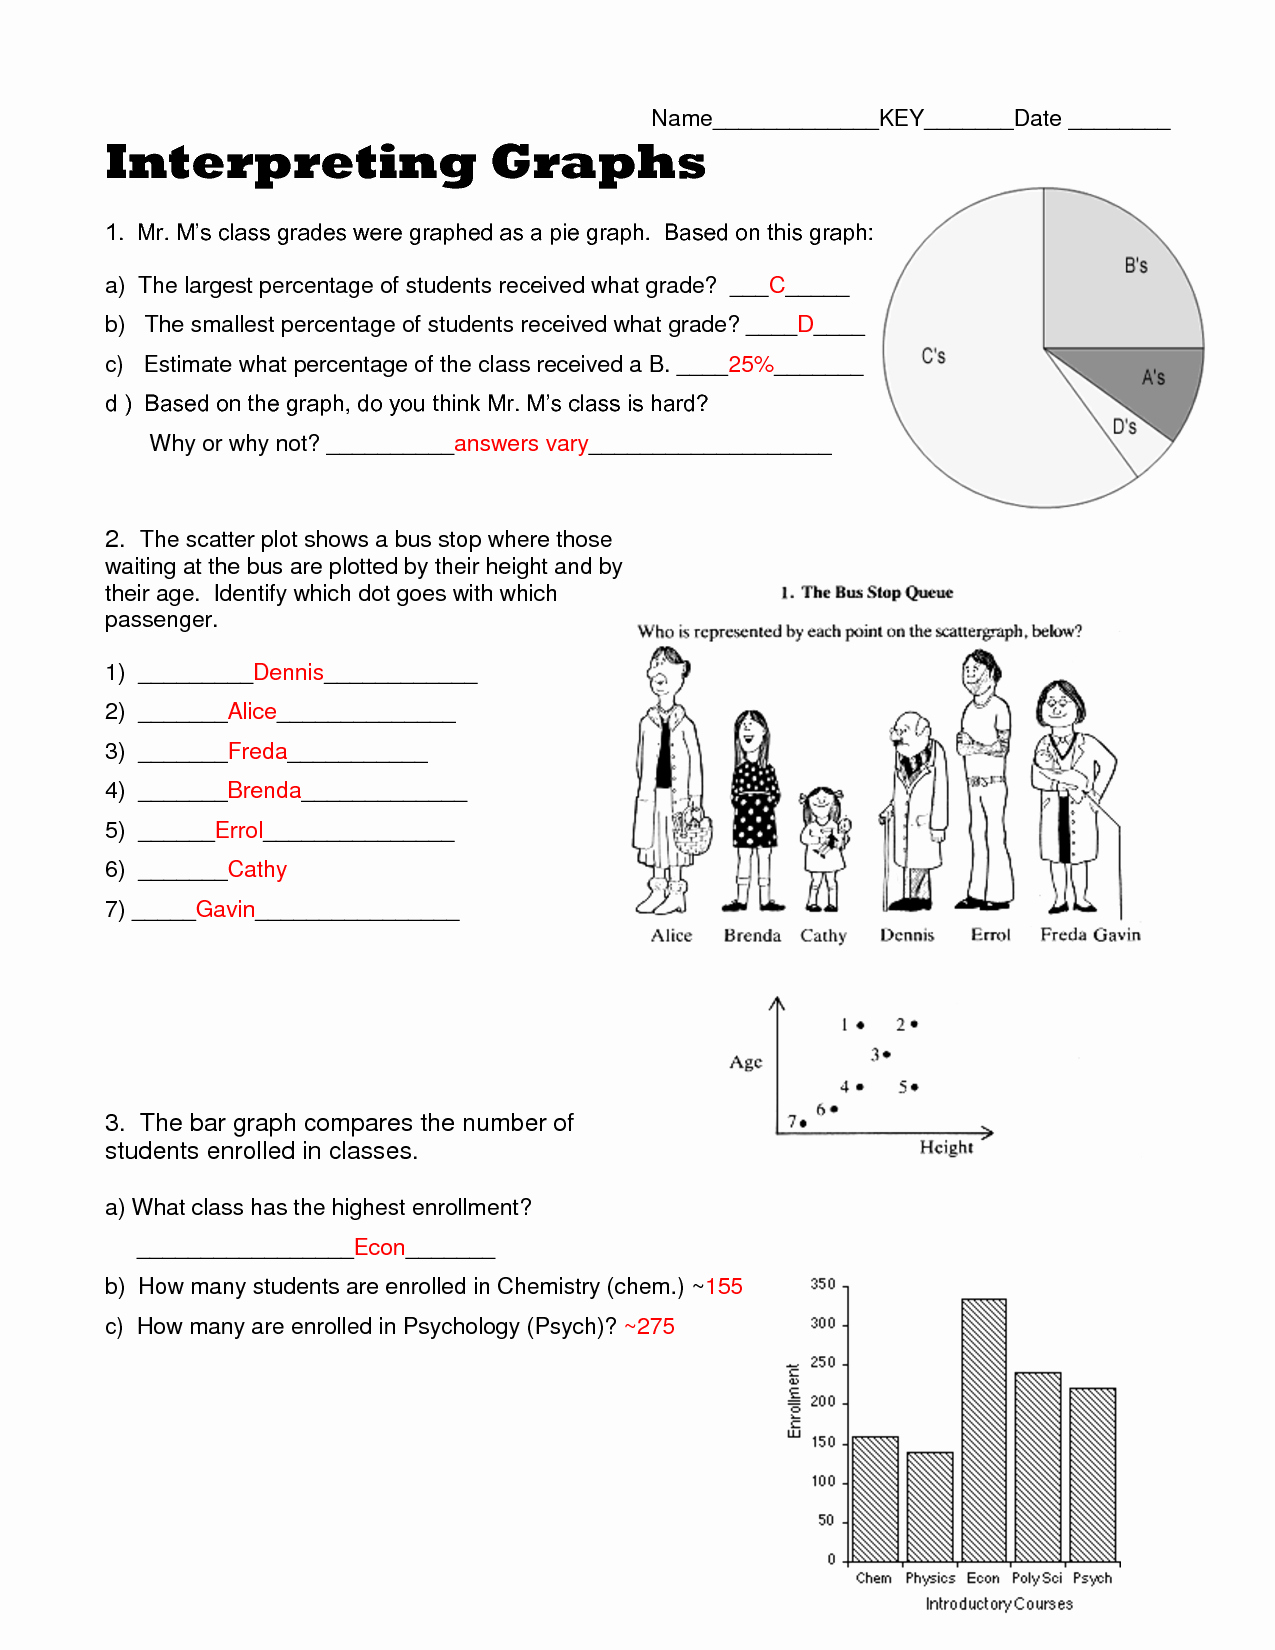 Interpreting Graphs Worksheet High School Luxury Interpreting Graphs Worksheet Middle School Interpreting